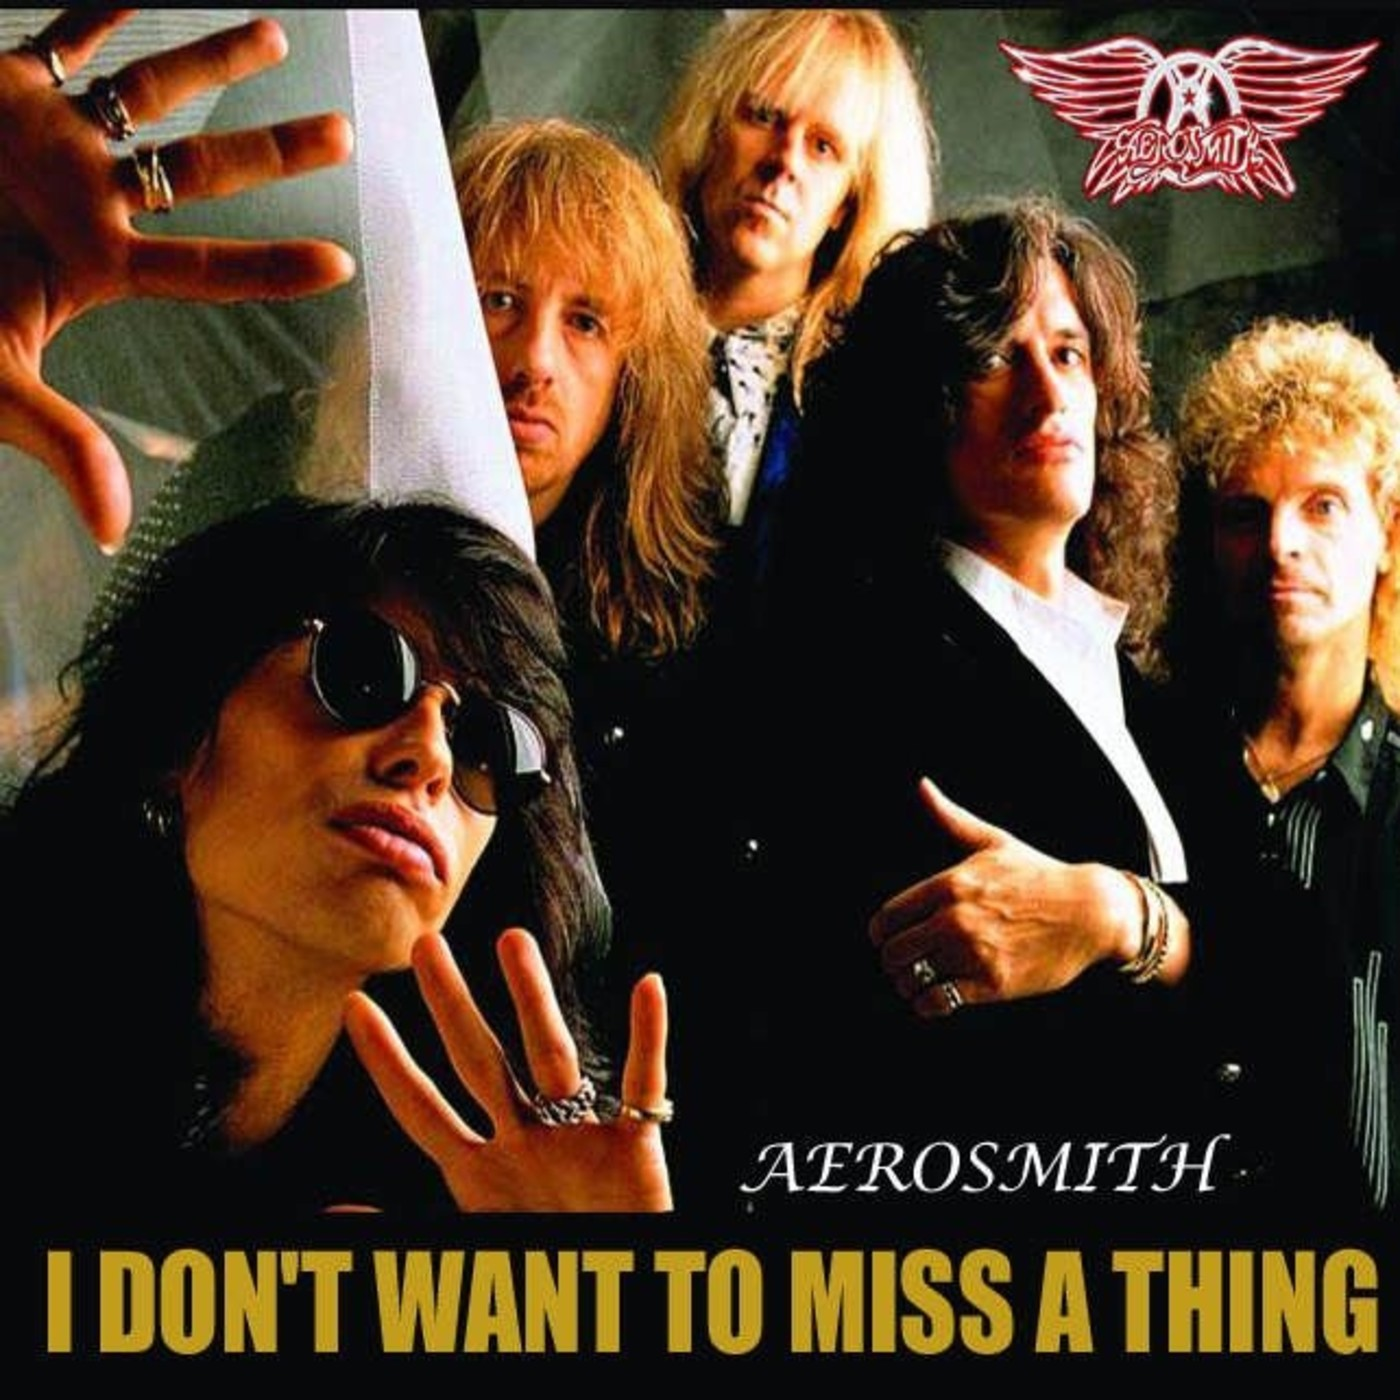 Aerosmith - I Don't Want to Miss a Thing en CharlieAlcinoo en mp3(01/09 a  las 15:41:00) 04:54 20640252 - iVoox